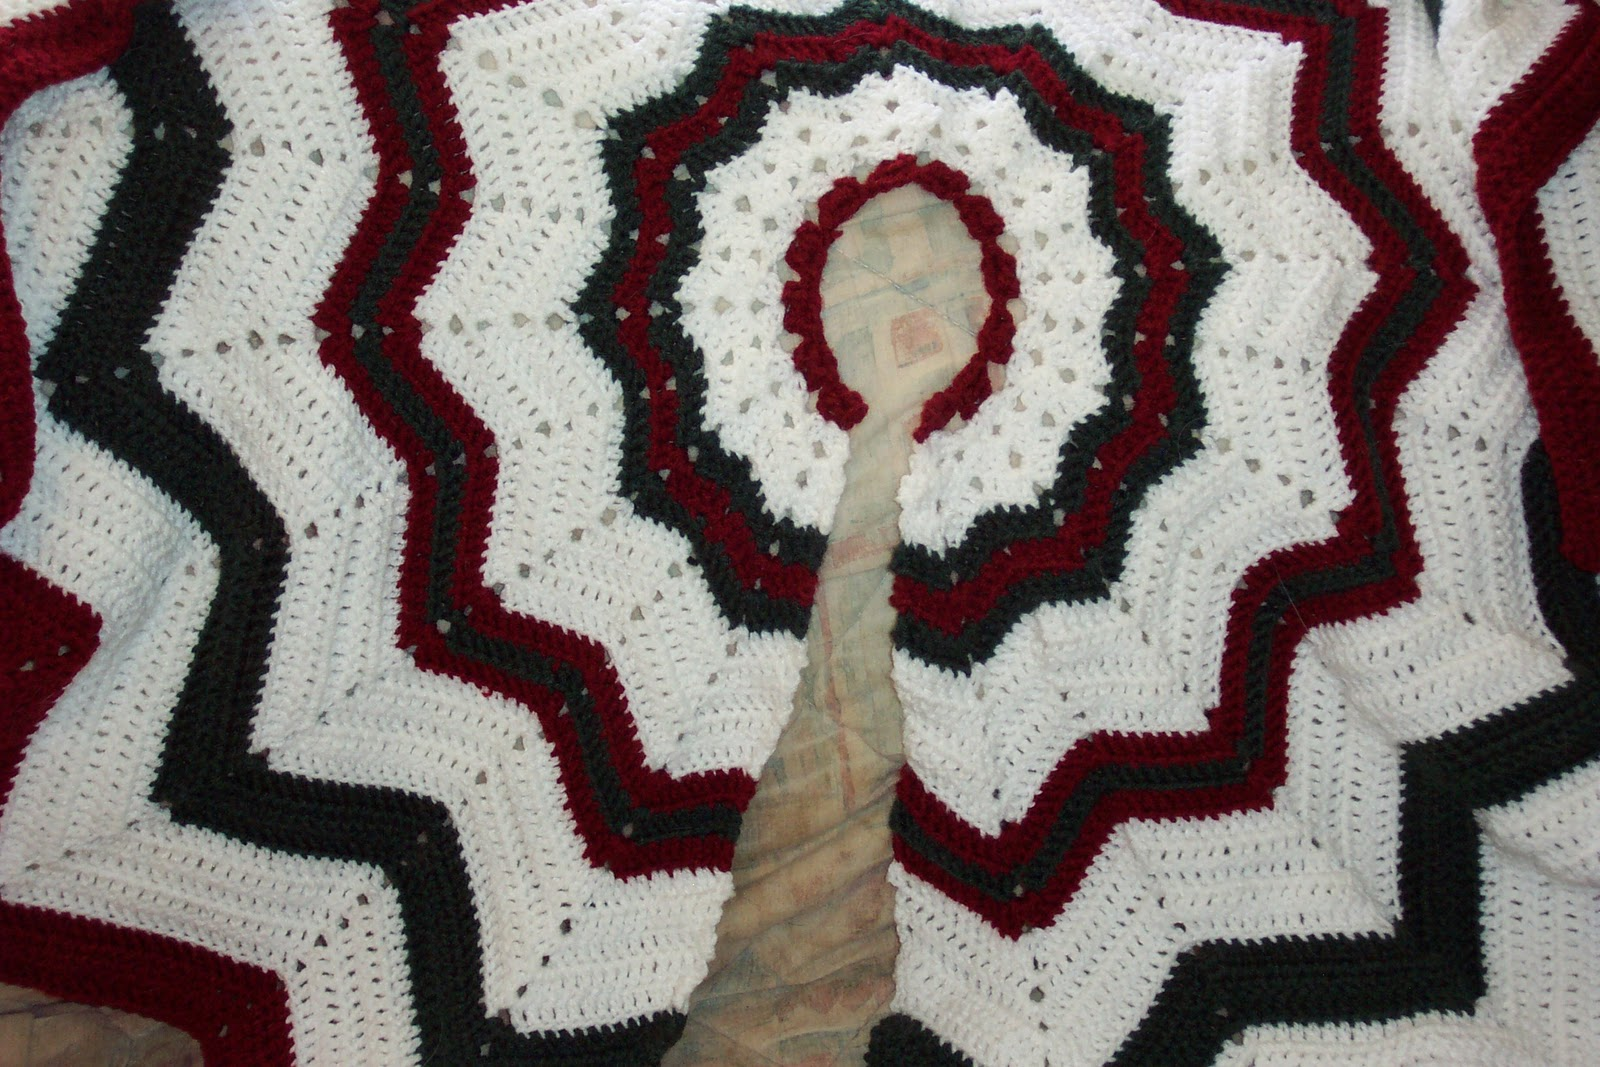 VICTORIAN CROCHET CHRISTMAS TREE SKIRT PATTERN ? Easy ...